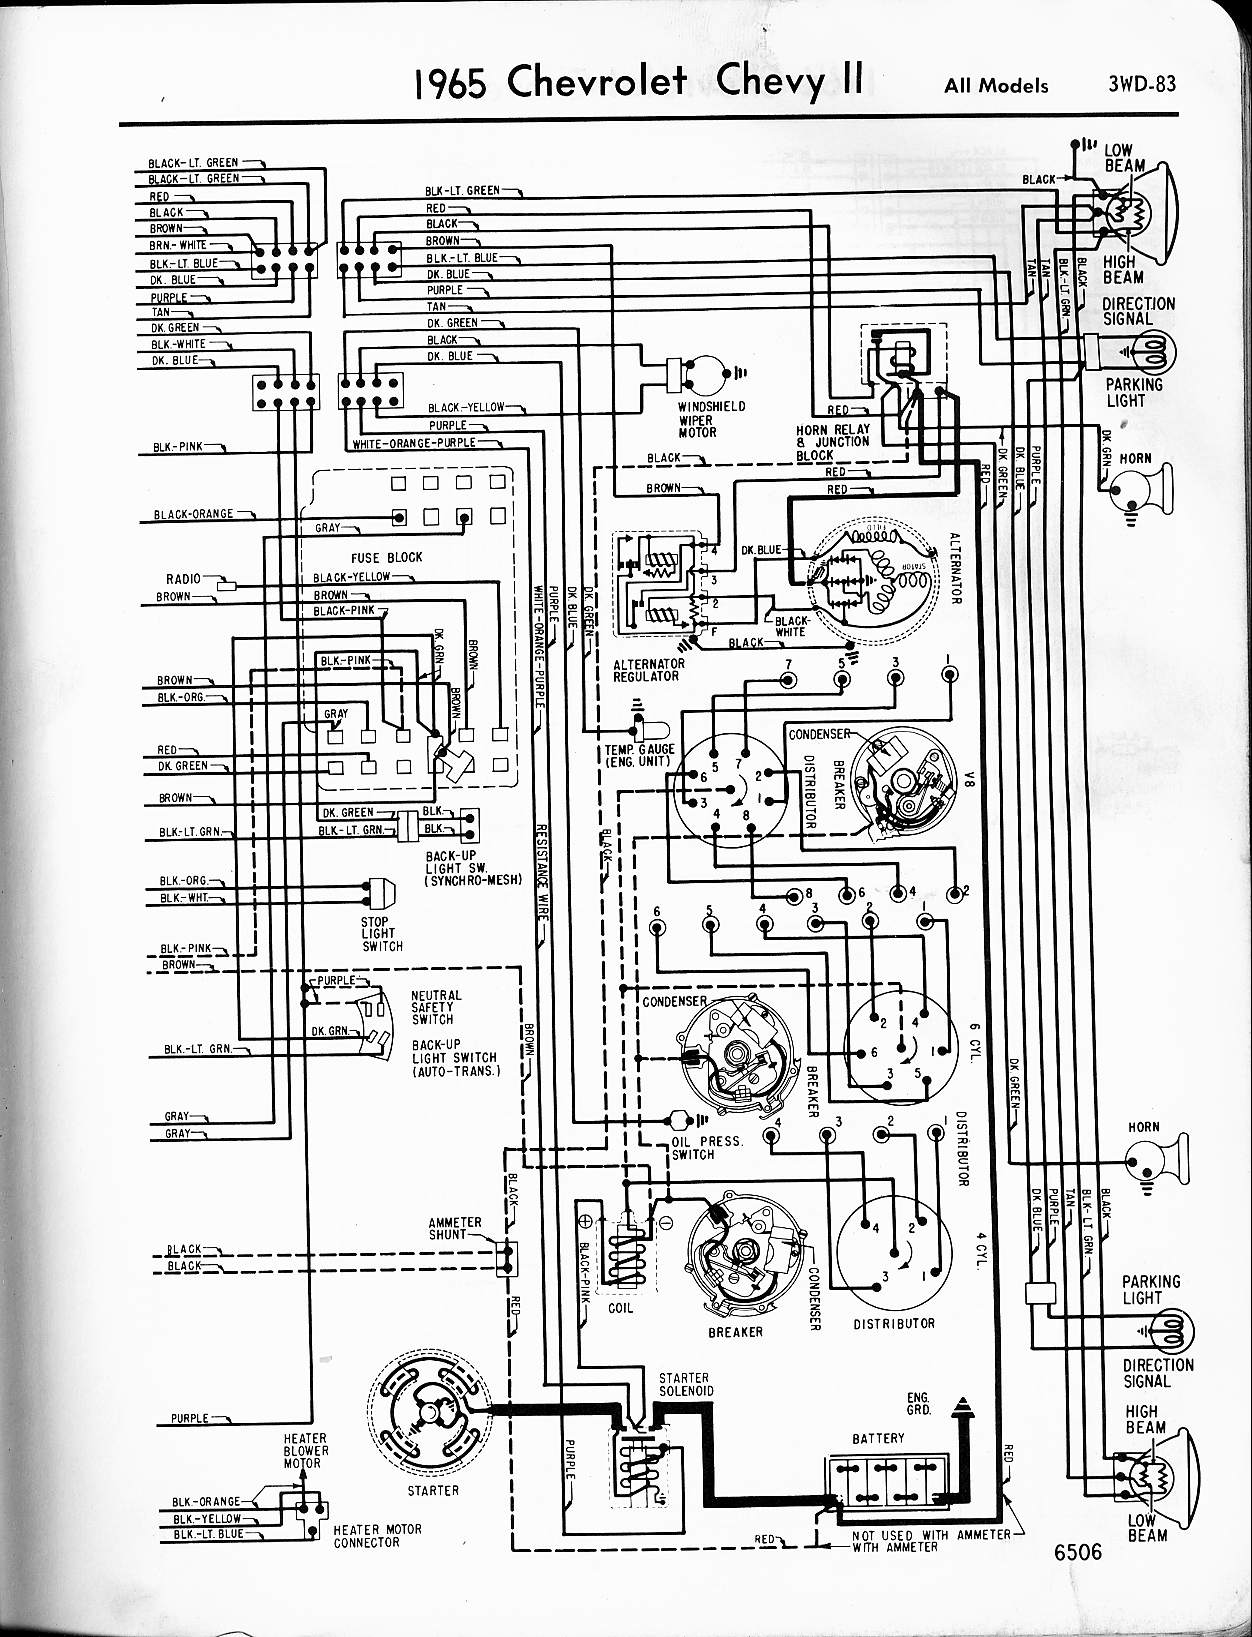 MWireChev65_3WD 083 66 chevelle wiring schematics free download diagram schematic 65 comet wiring harness at gsmx.co